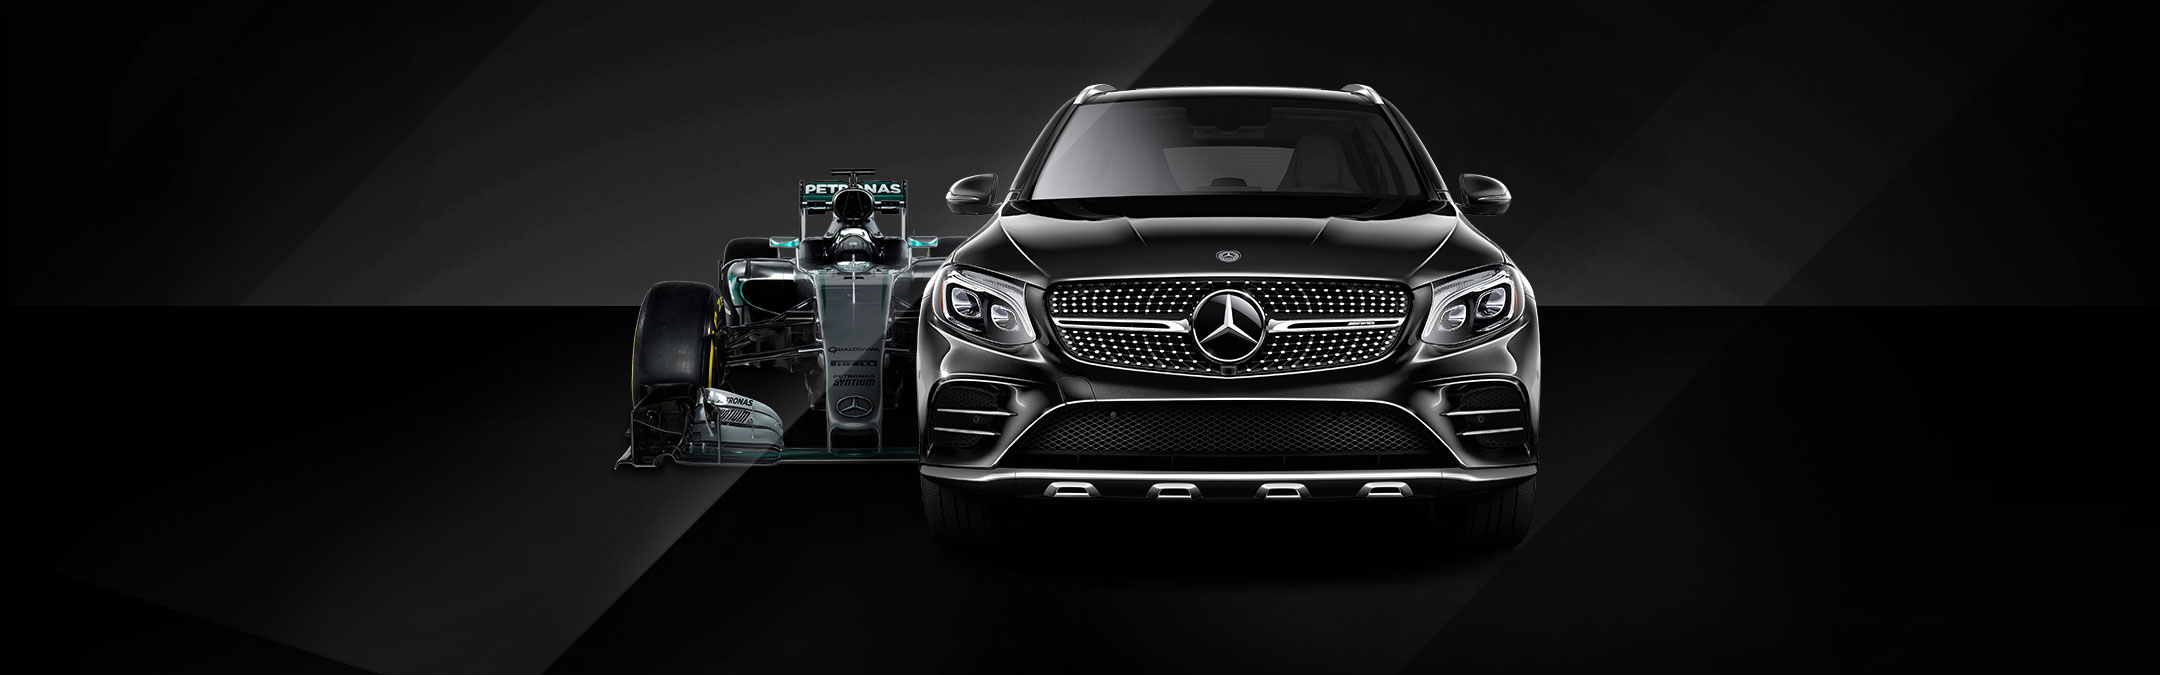 2019 Mercedes-AMG GLC Performance